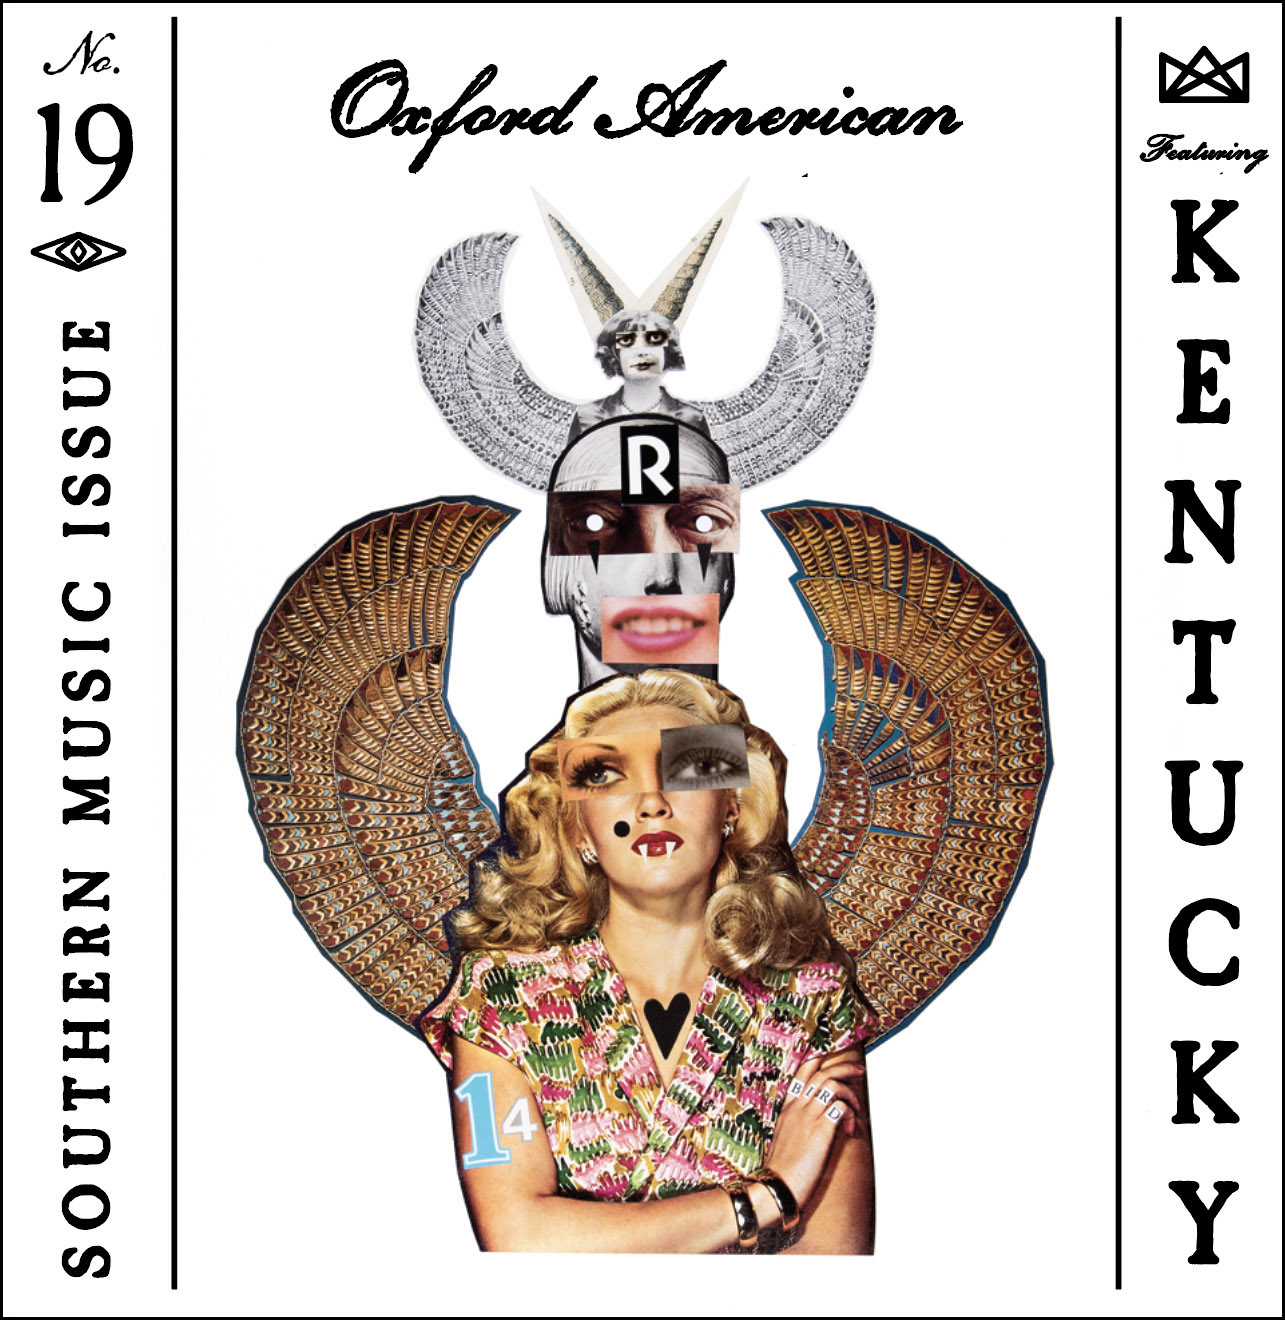 Various Artists - The Oxford American Magazine's 19th Southern Music Issue: Kentucky, Winter 2017  Release Date: November 21, 2017 Magazine: Oxford American Magazine  SERVICE: Restoration,Mastering NUMBER OF DISCS: 1 GENRE: Kentucky FORMAT: CD, Download